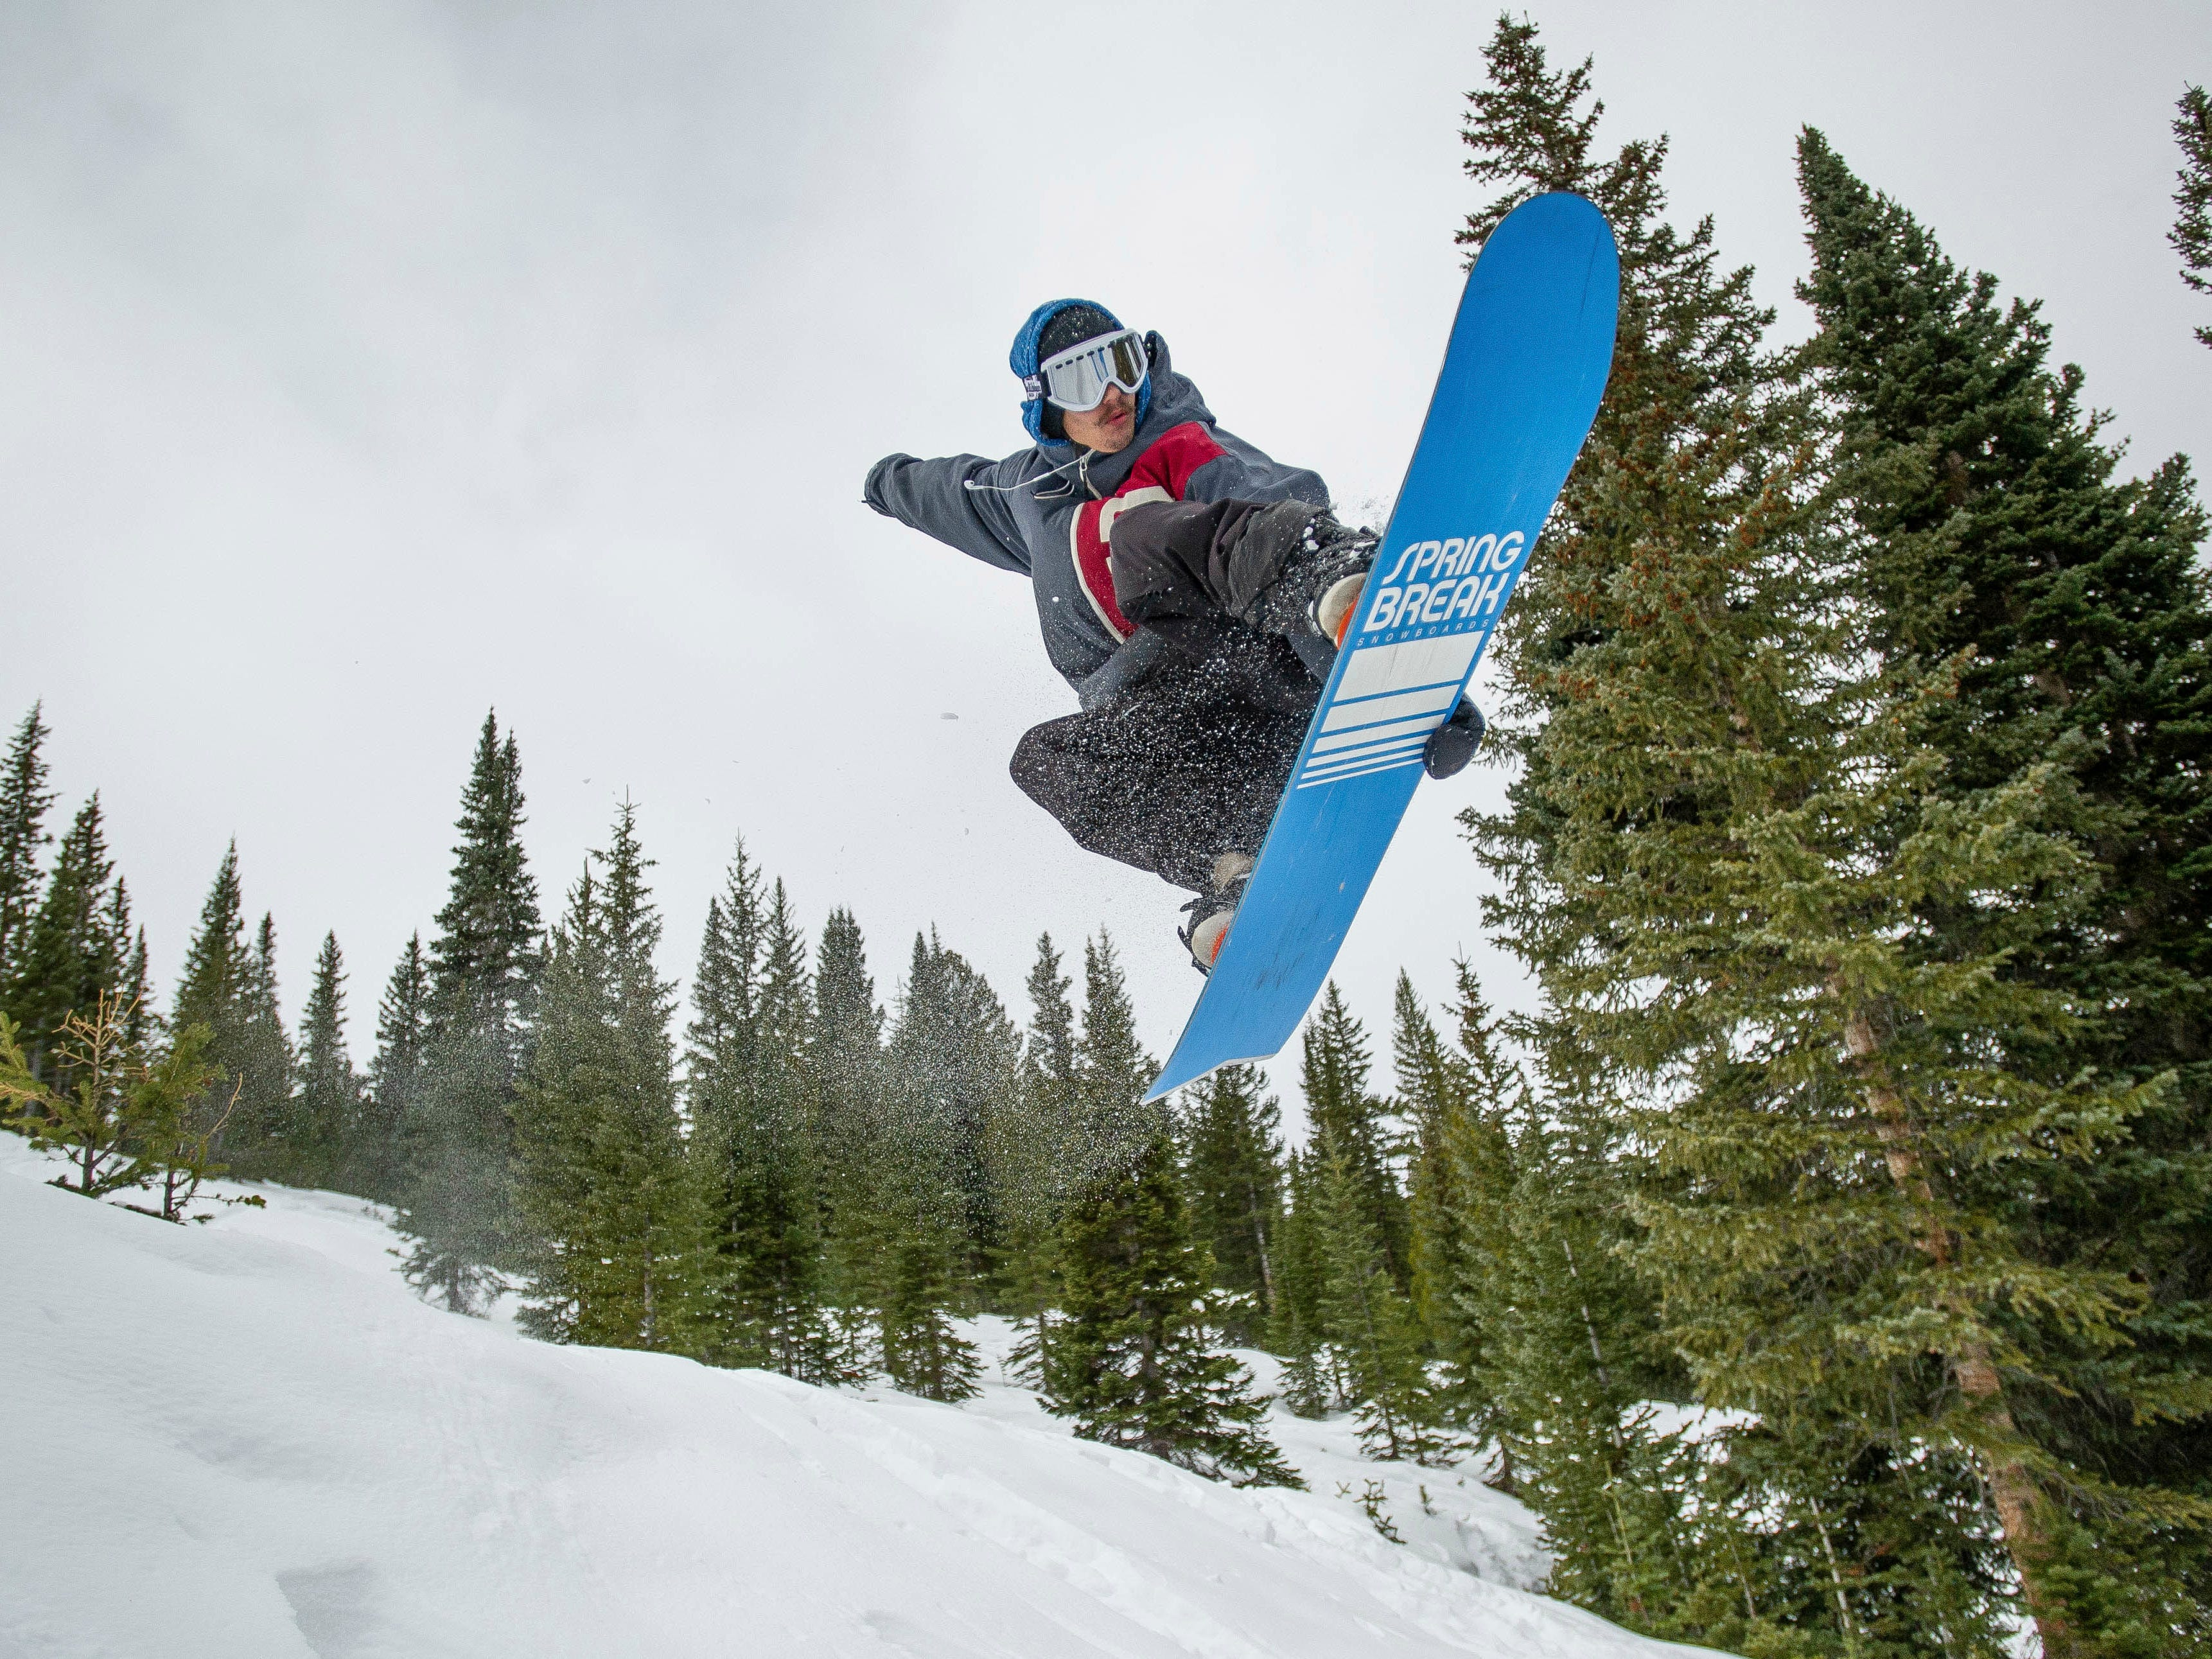 Josh Stump snowboards down Snowmass Mountain in Colorado, Friday, Nov. 23, 2018. Snowmass Ski Area, Crested Butte Mountain Resort and Telluride Ski Resort all opened for the season Thursday.